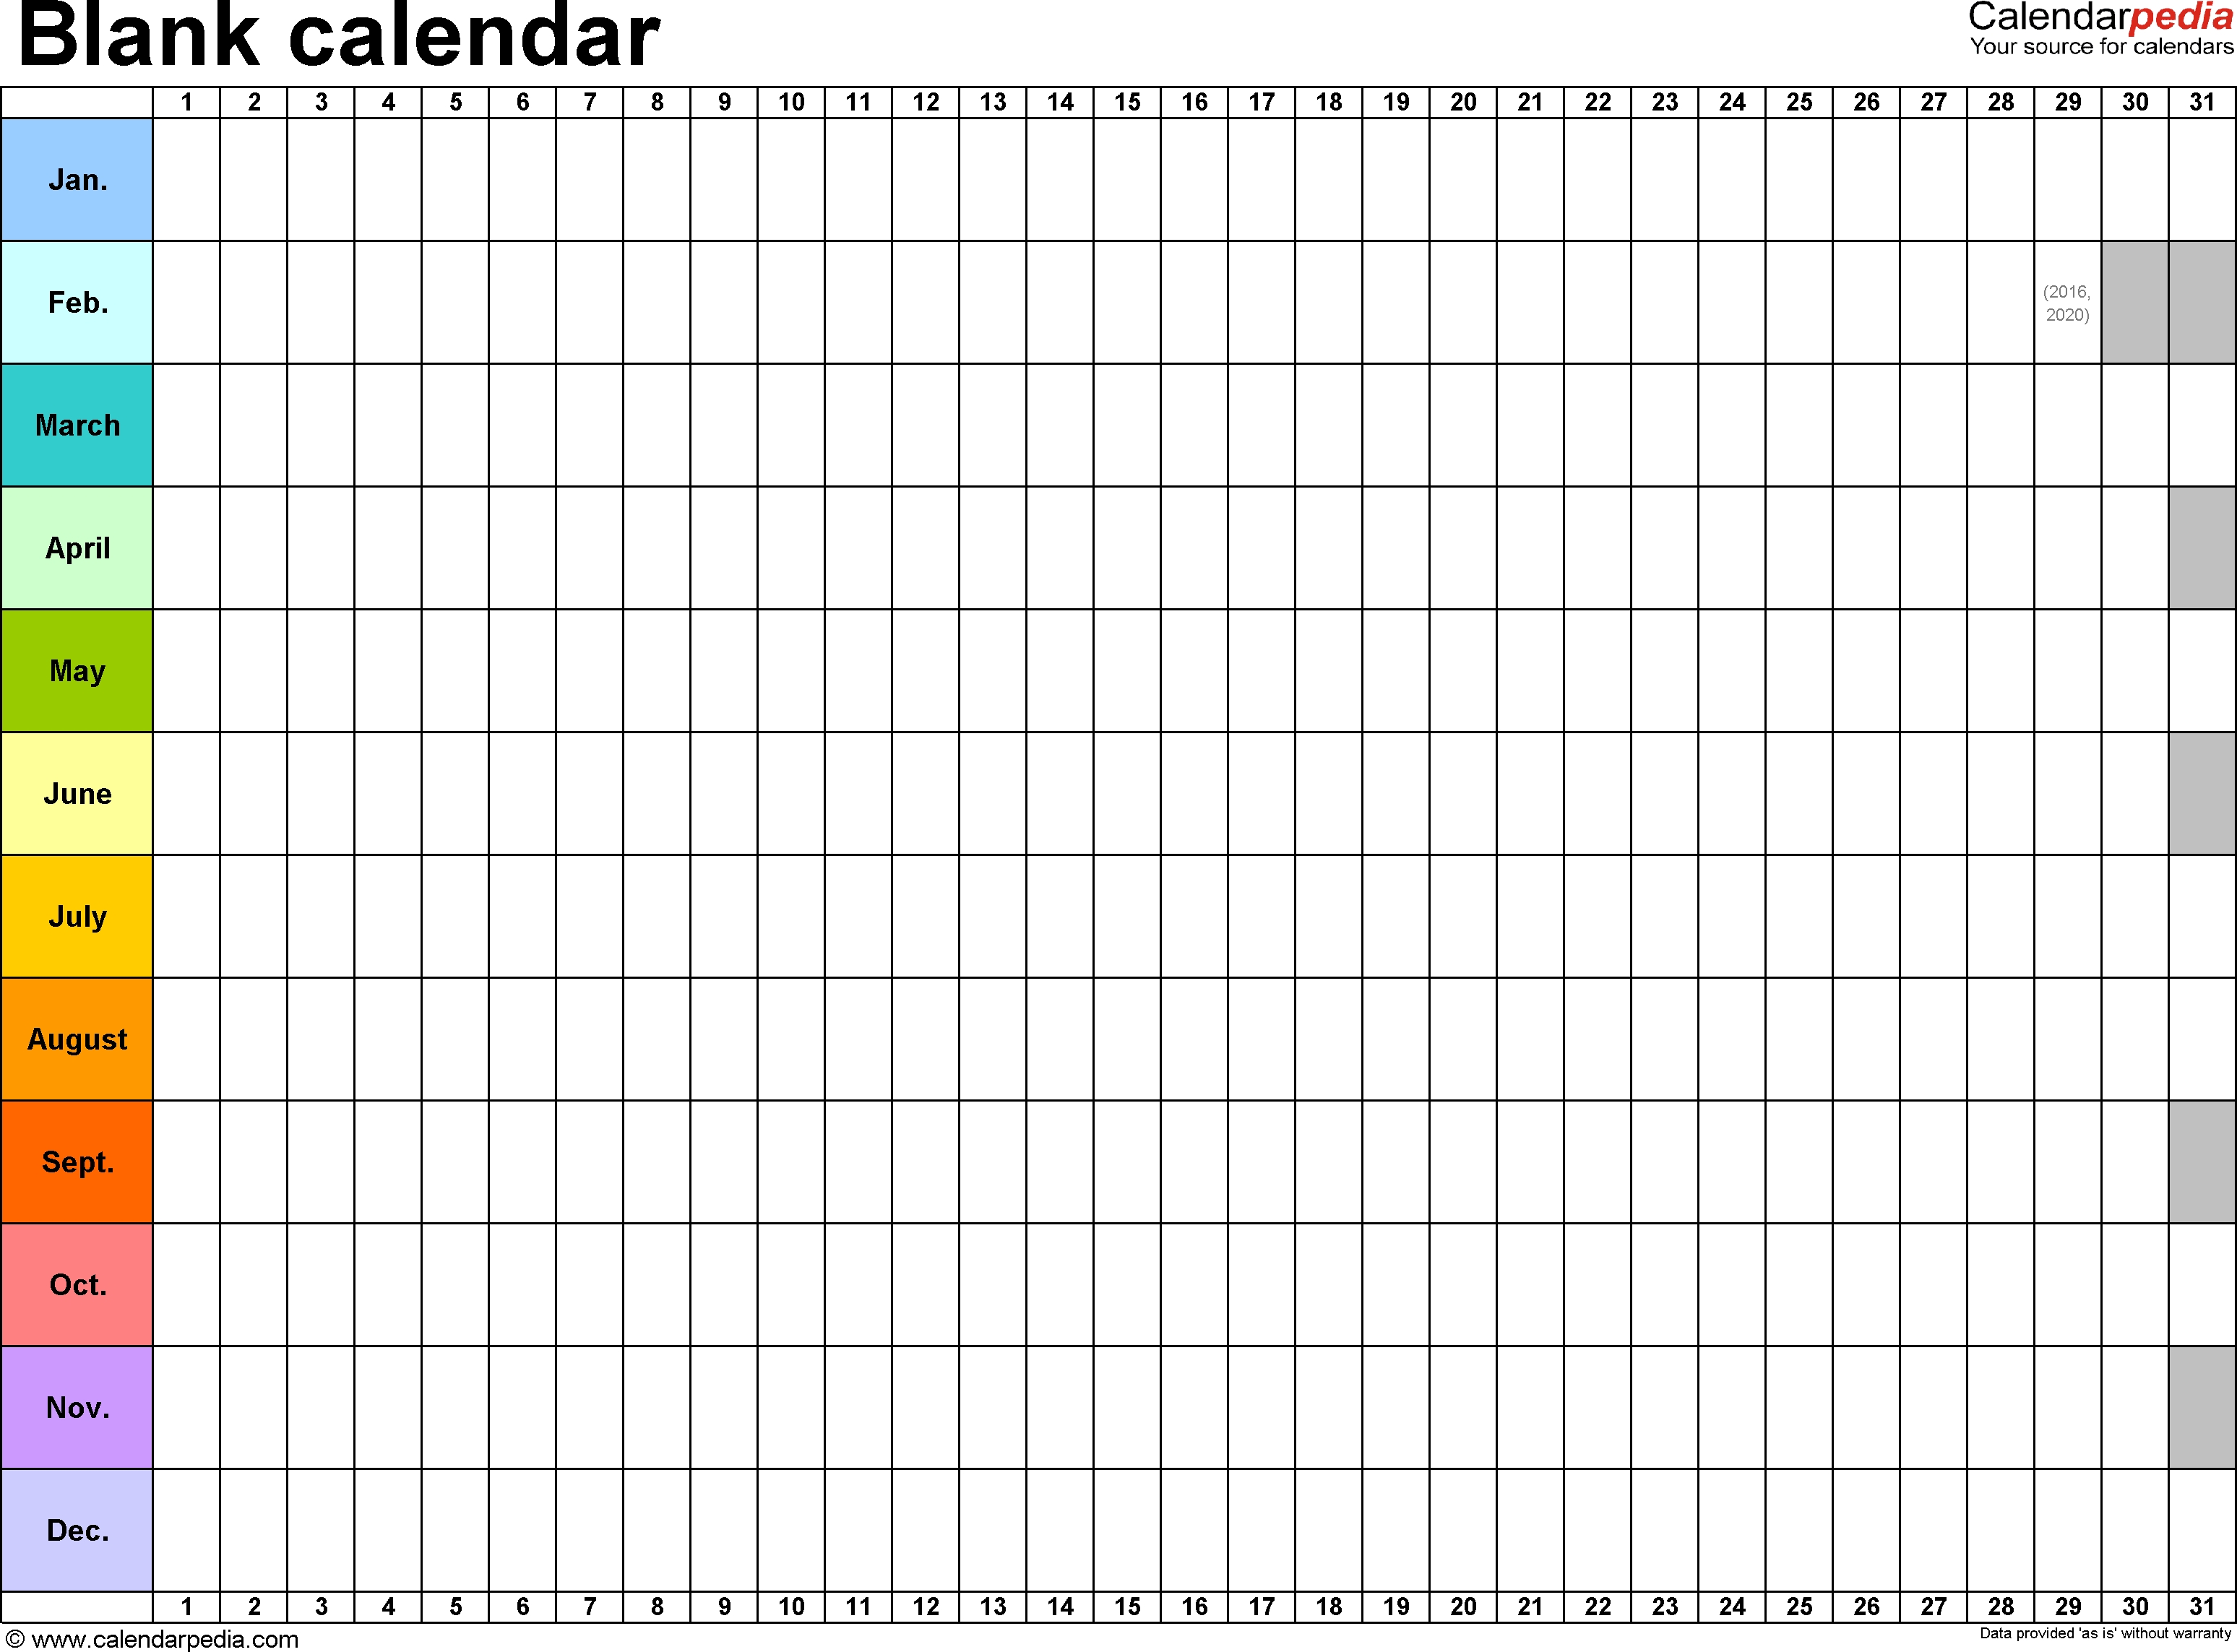 Blank Calendar - 9 Free Printable Microsoft Word Templates for 12 Month One Page Calendar